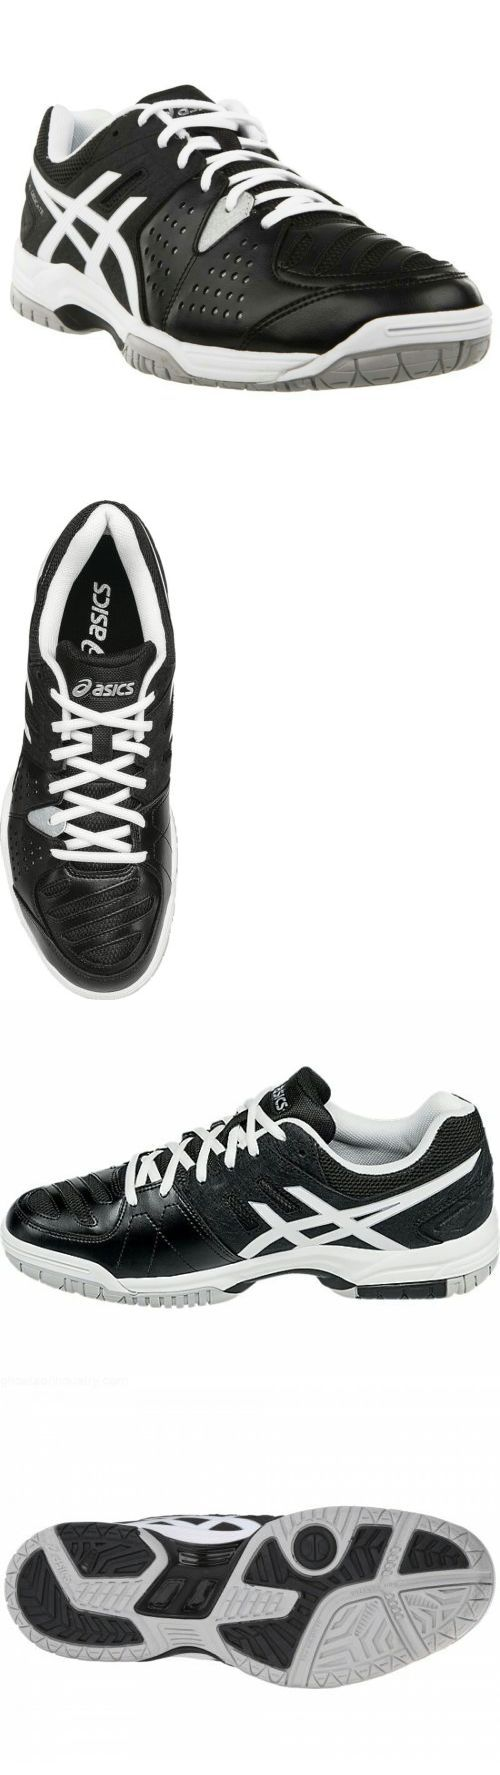 Shoes 62230: Asics Men S Gel Dedicate Tennis Volleyball Squash Shoes Size 11.5 Black White -> BUY IT NOW ONLY: $45 on eBay!